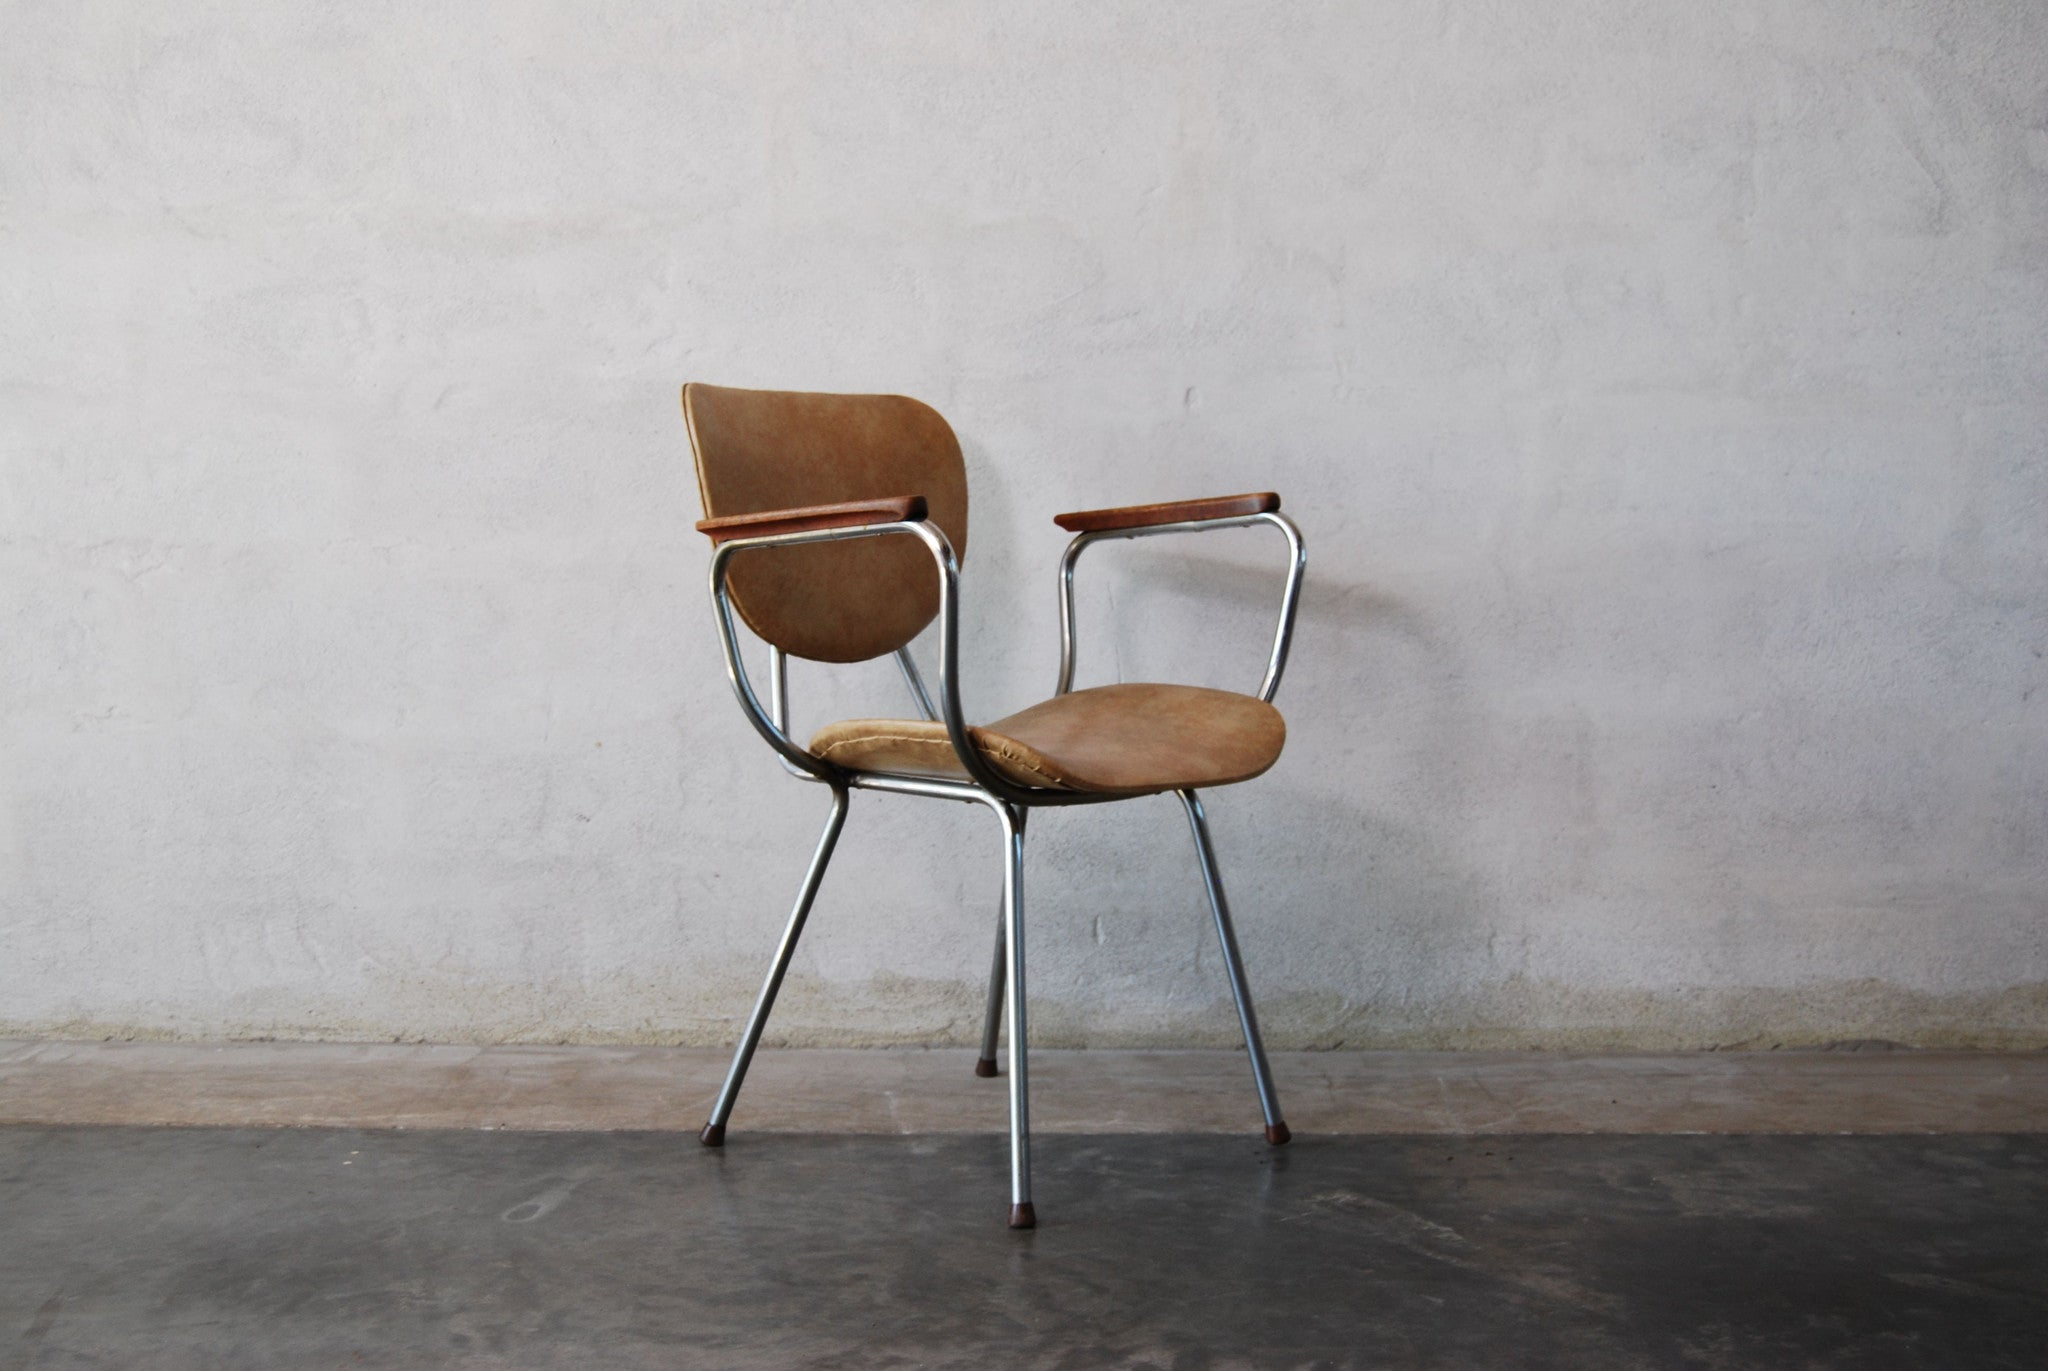 Chase & Sorensen Desk chair by DS Staal Stel